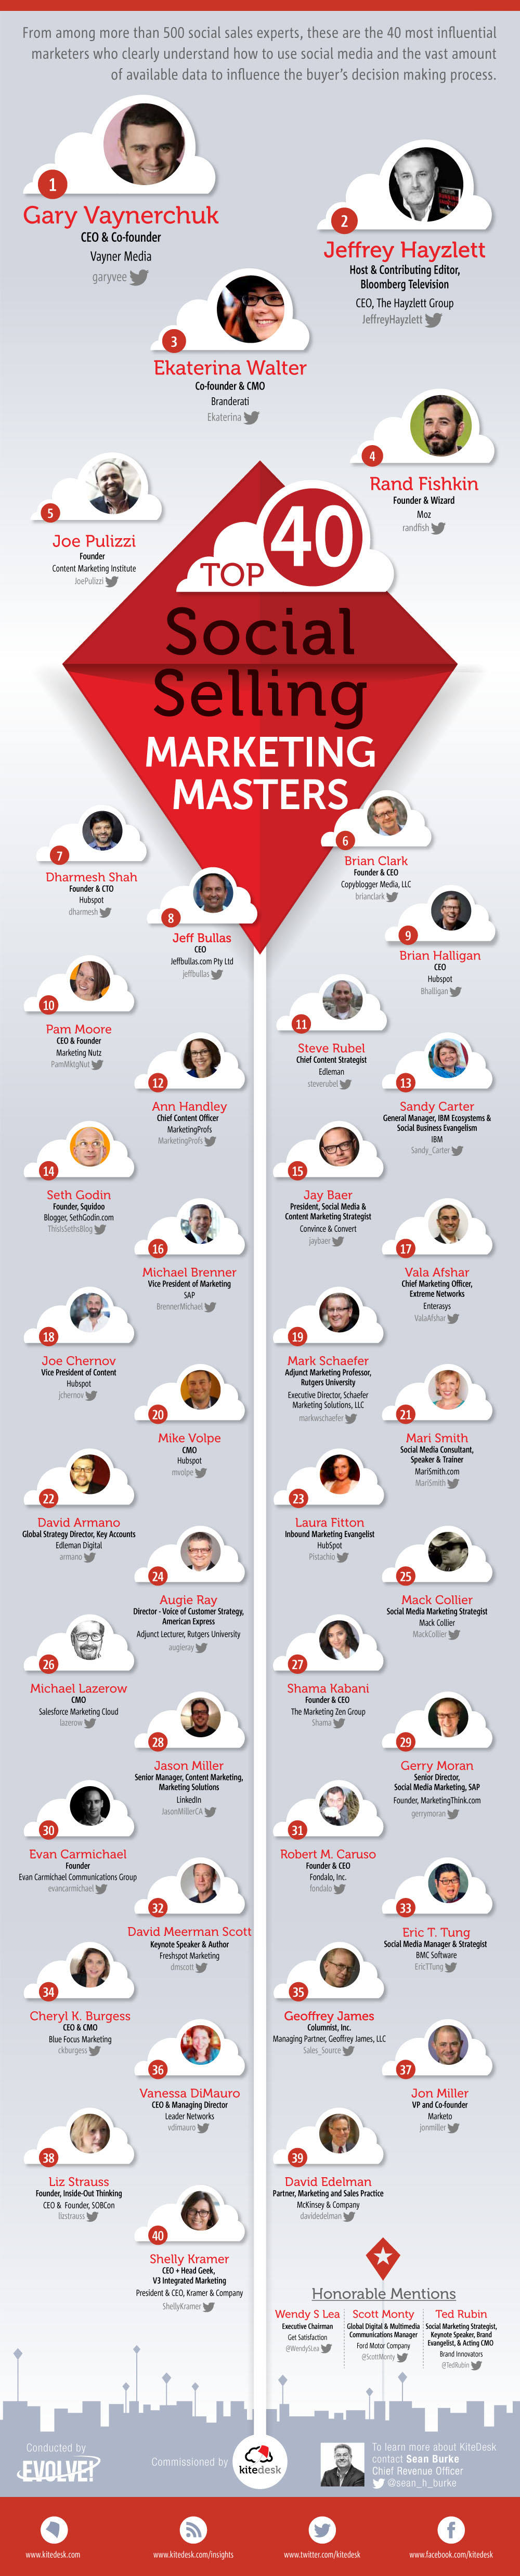 2014: Meet The World's Most Influential Social Selling Marketing Masters - #infographic #socialmedia #influencers